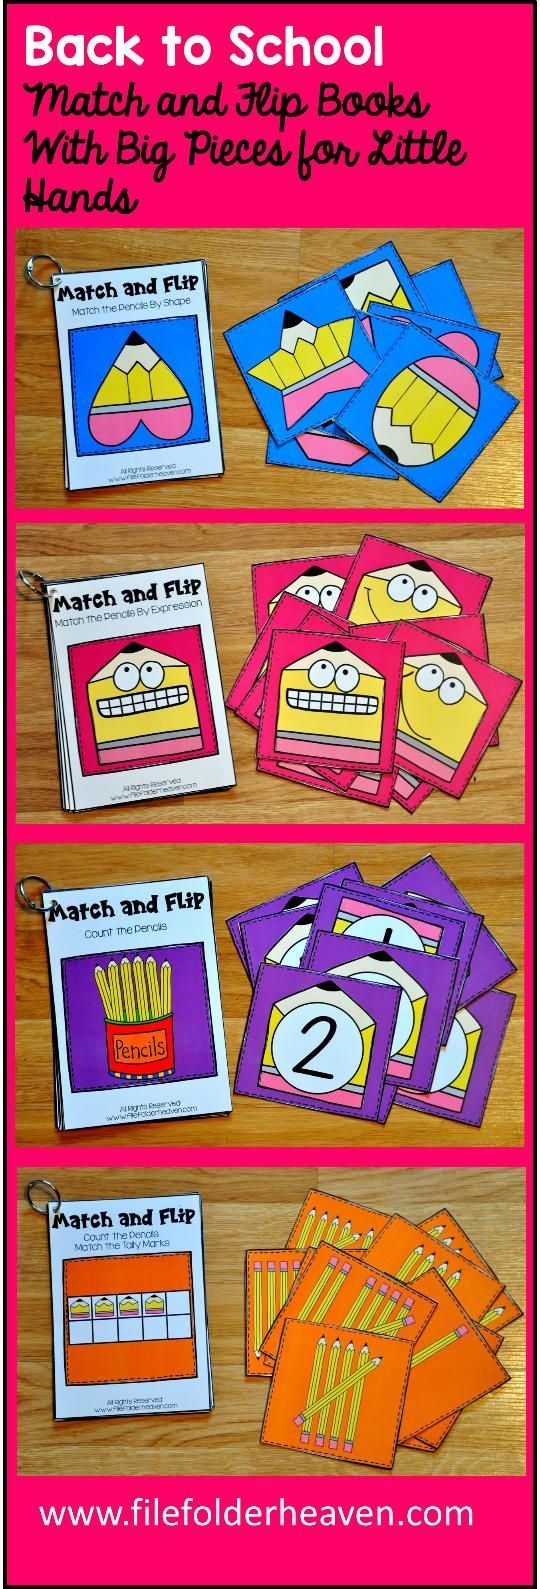 These Matching Activities: Back to School Match and Flip Books III focus on basic matching skills and have a pencil theme. In these activities, students work on matching picture to picture (matching by expression), matching by counting, and matching by shape. There are four Match and Flip Books included in this download. Match the Pencils By Expression (Matching Picture to Picture) Match the Pencils By Shape (Matching By Shape) Count the Pencils/Match the Numbers (Matching By Counting) Count